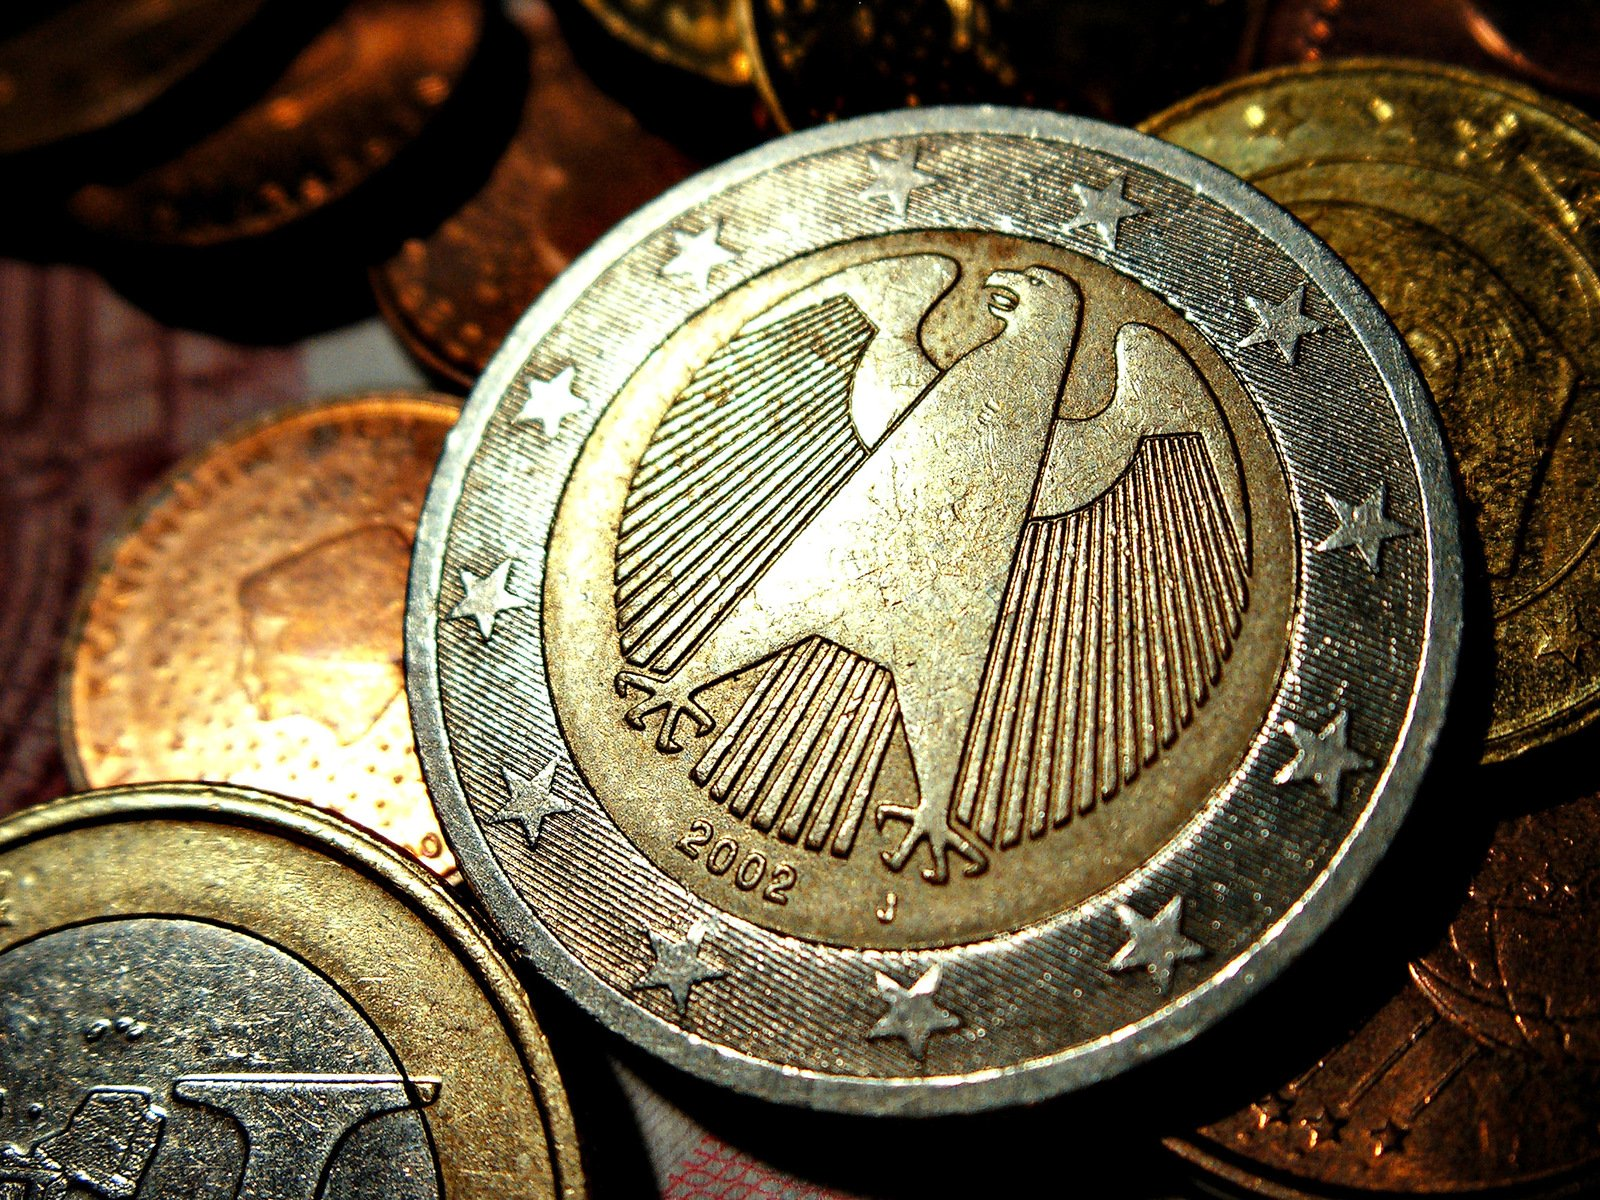 German euro coin